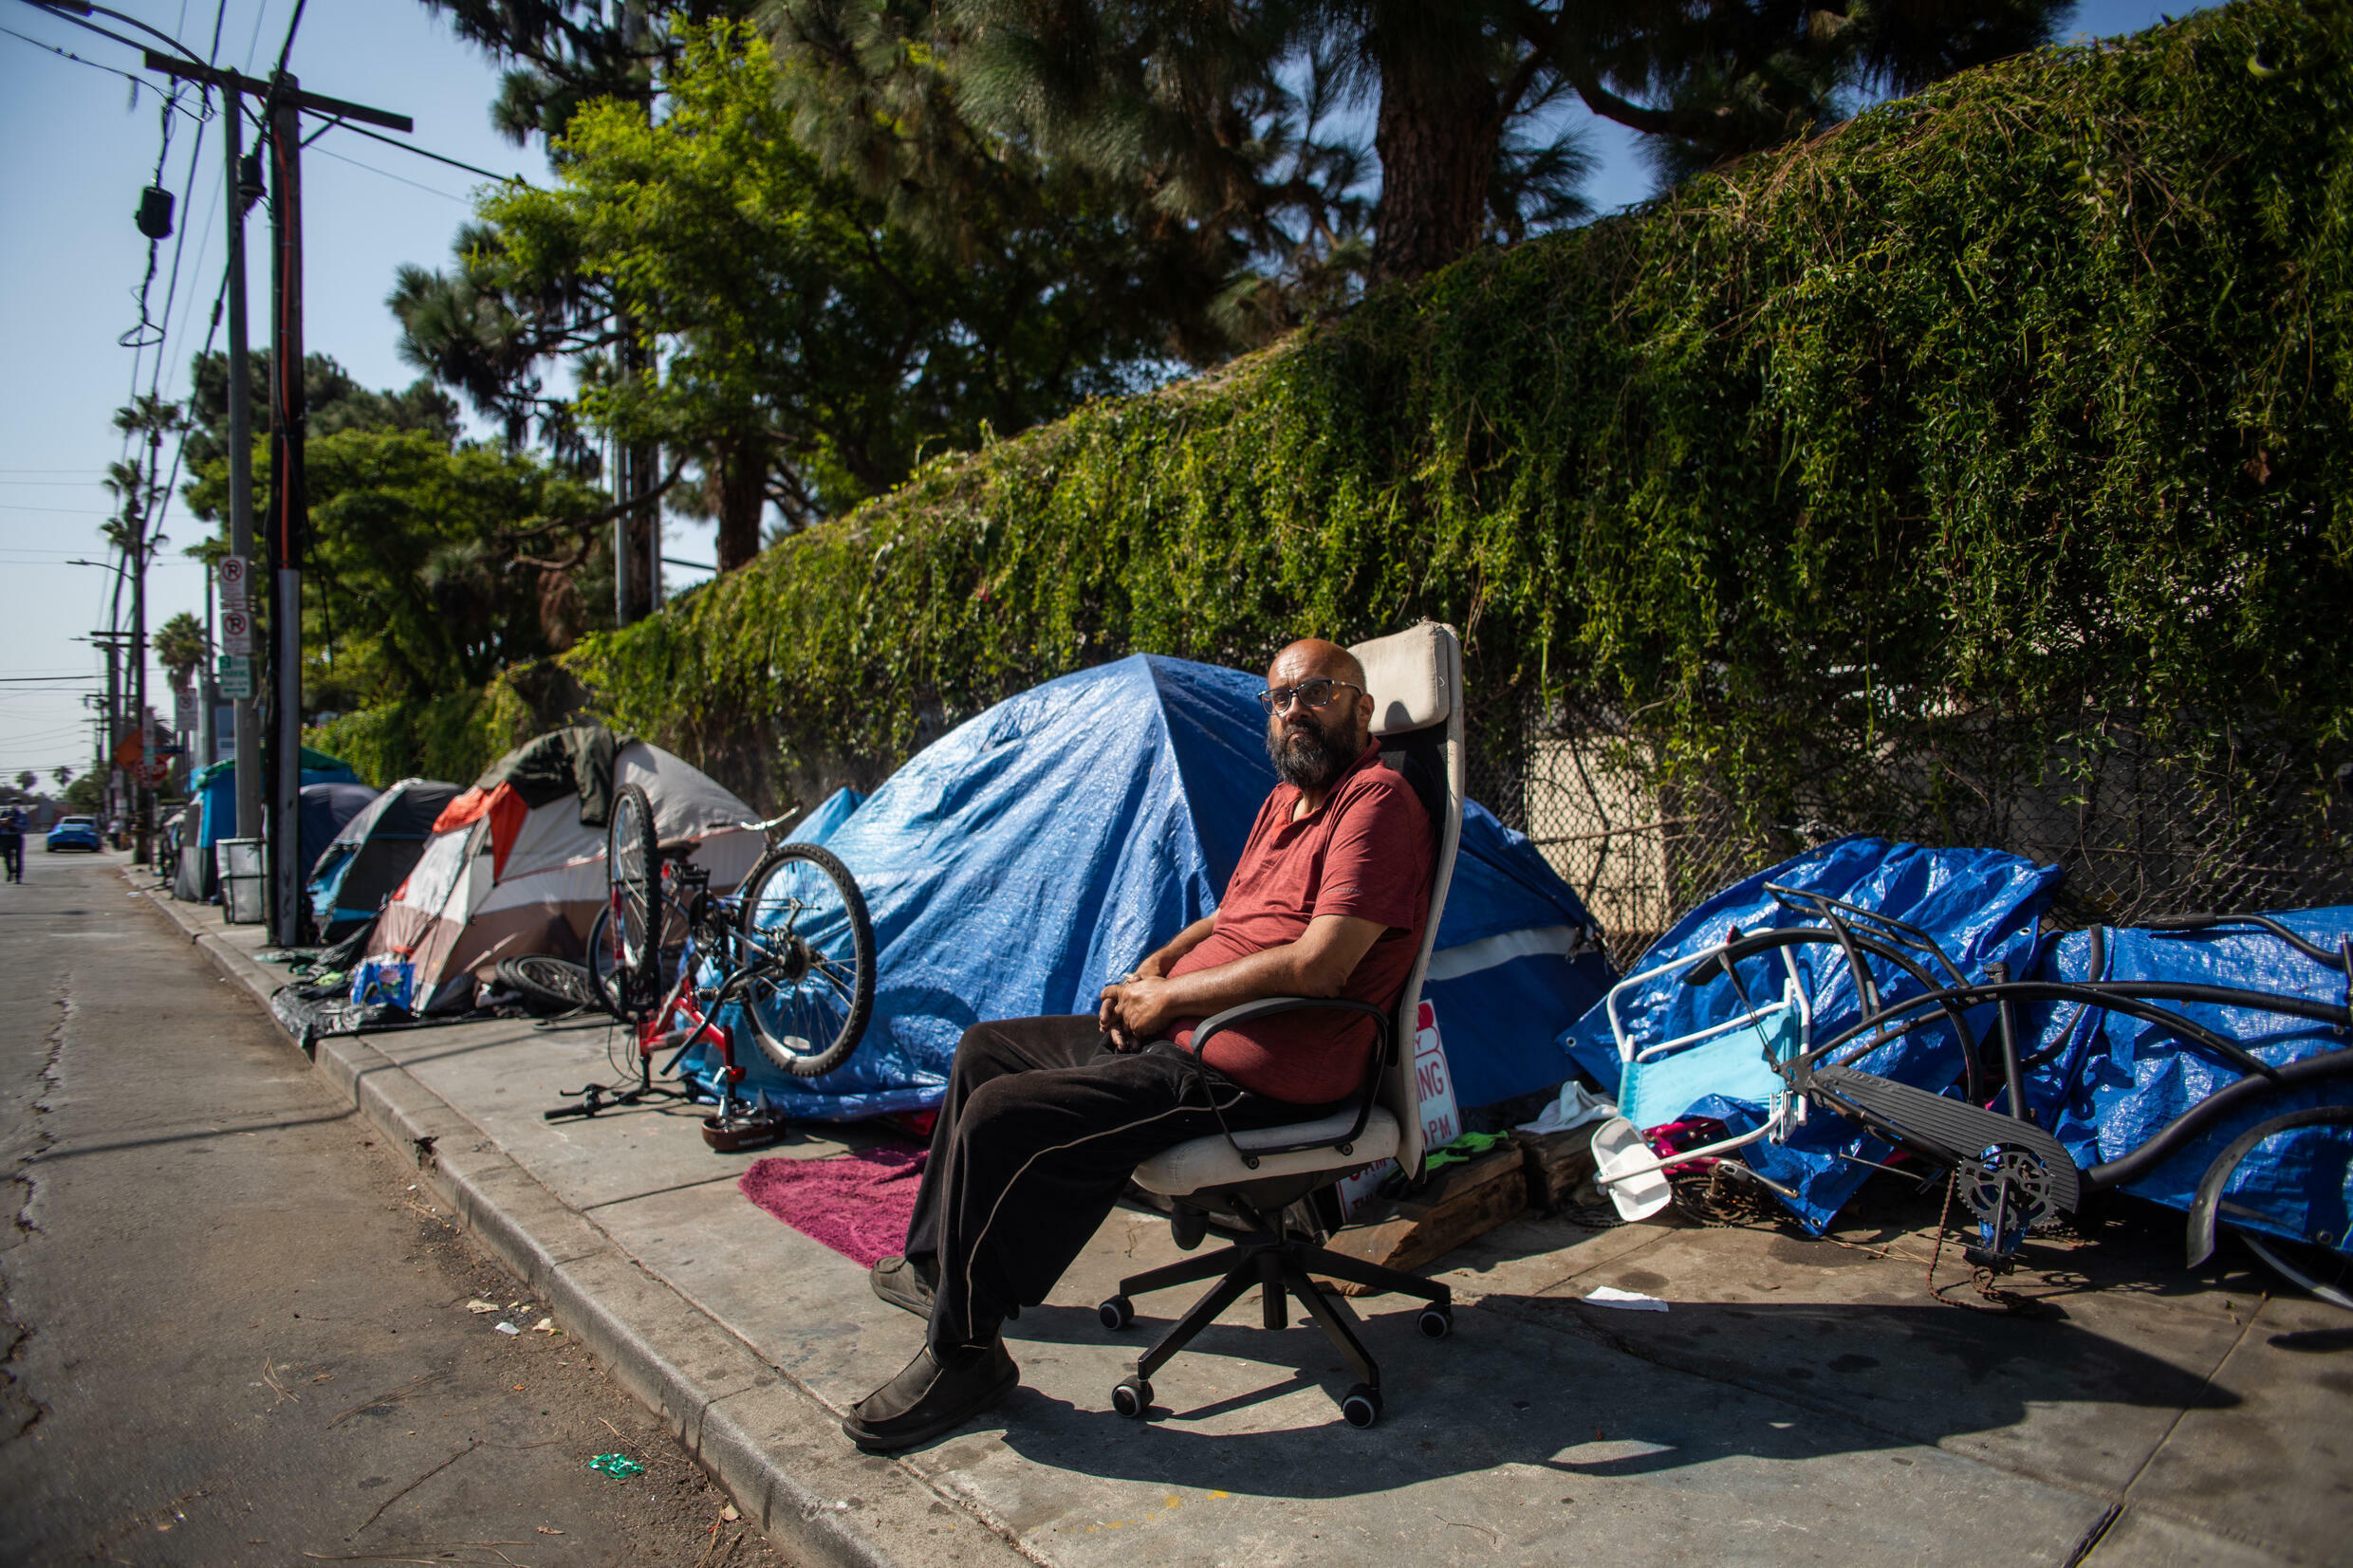 Shocking levels of homelessness in California are an ongoing problem for voters, with thousands living in tents on the streets